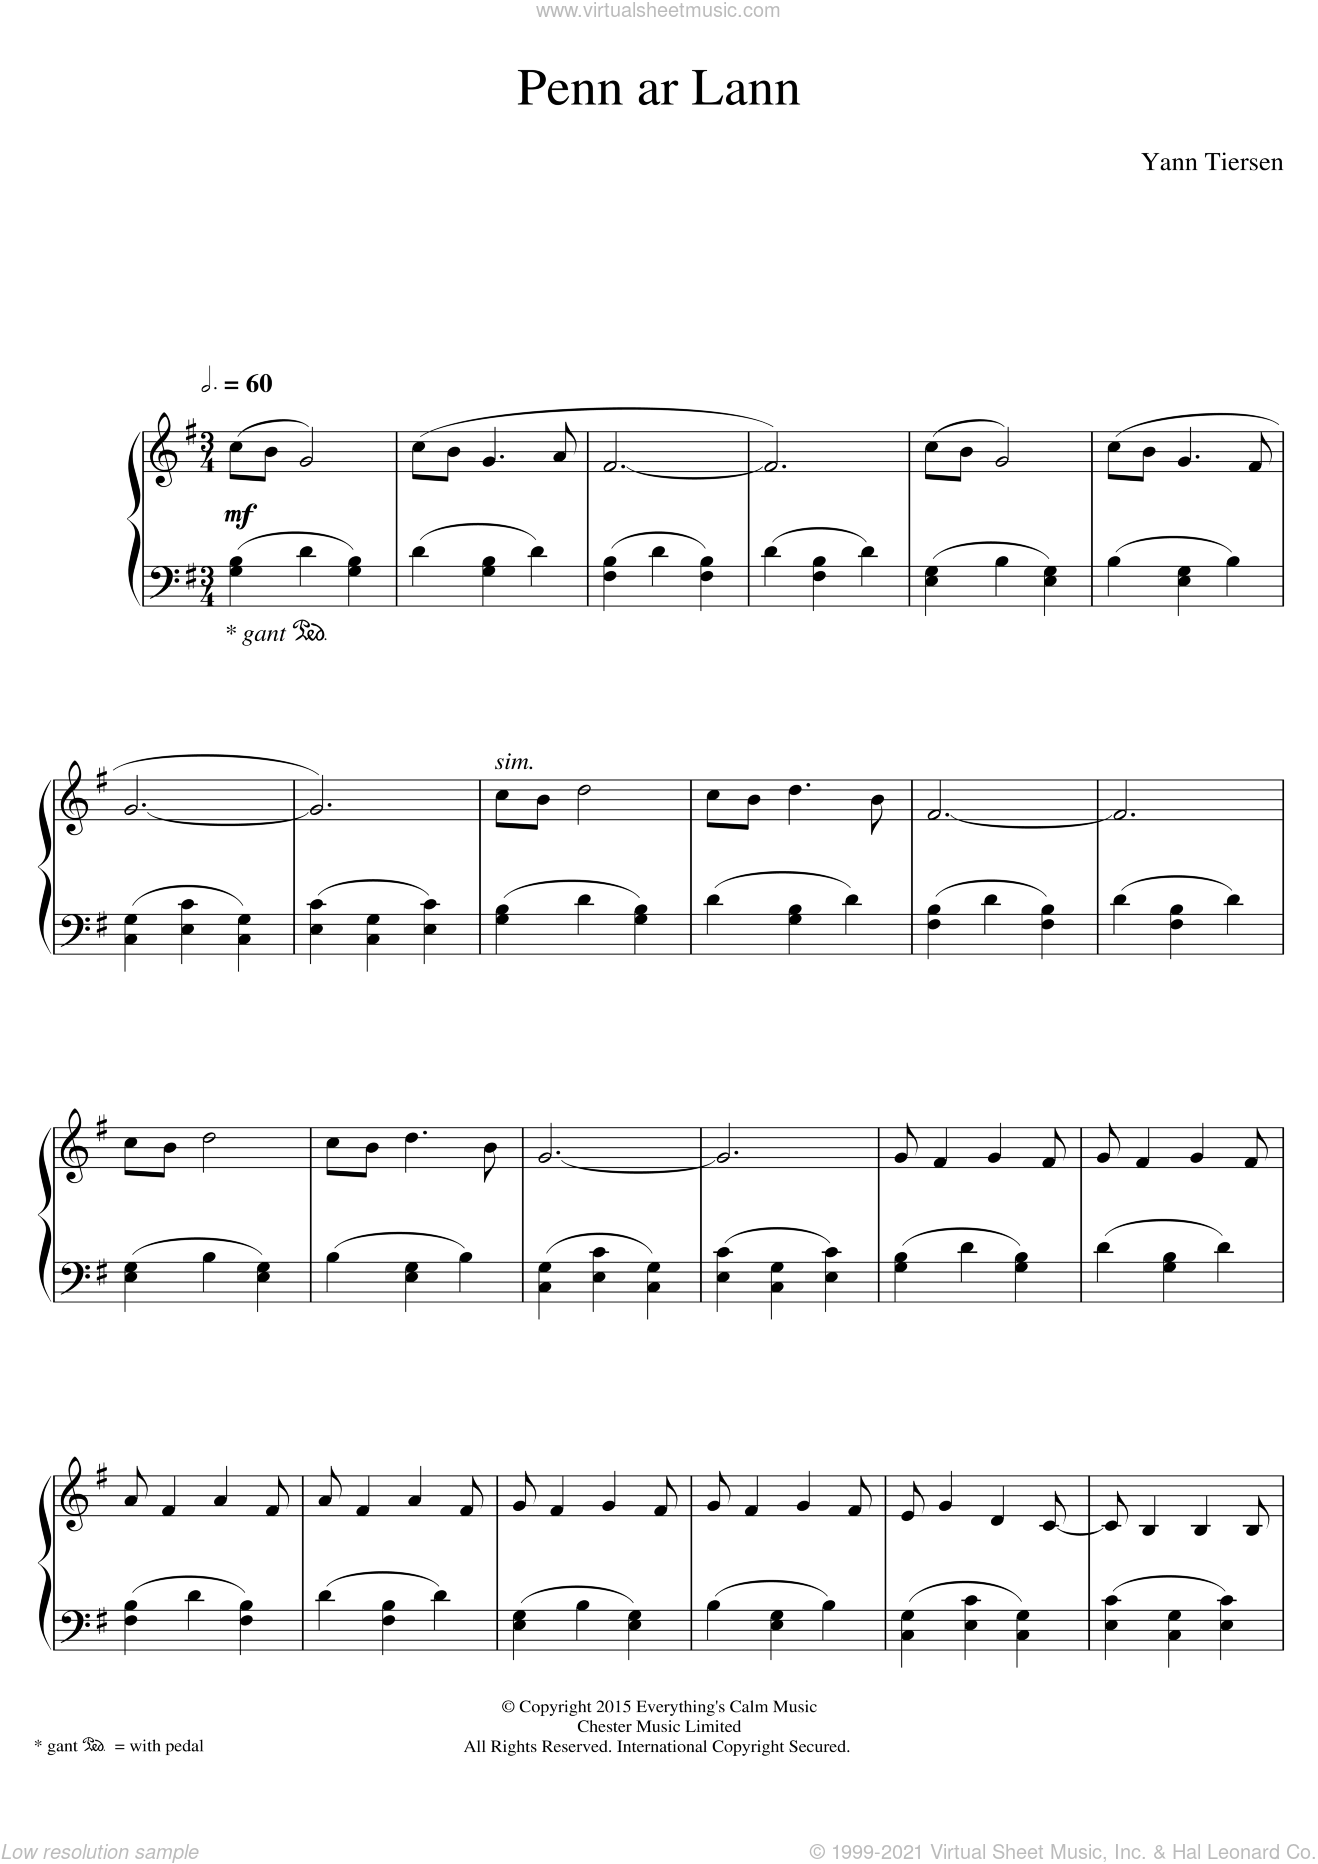 Penn Ar Lann sheet music for piano solo by Yann Tiersen, classical score, intermediate skill level